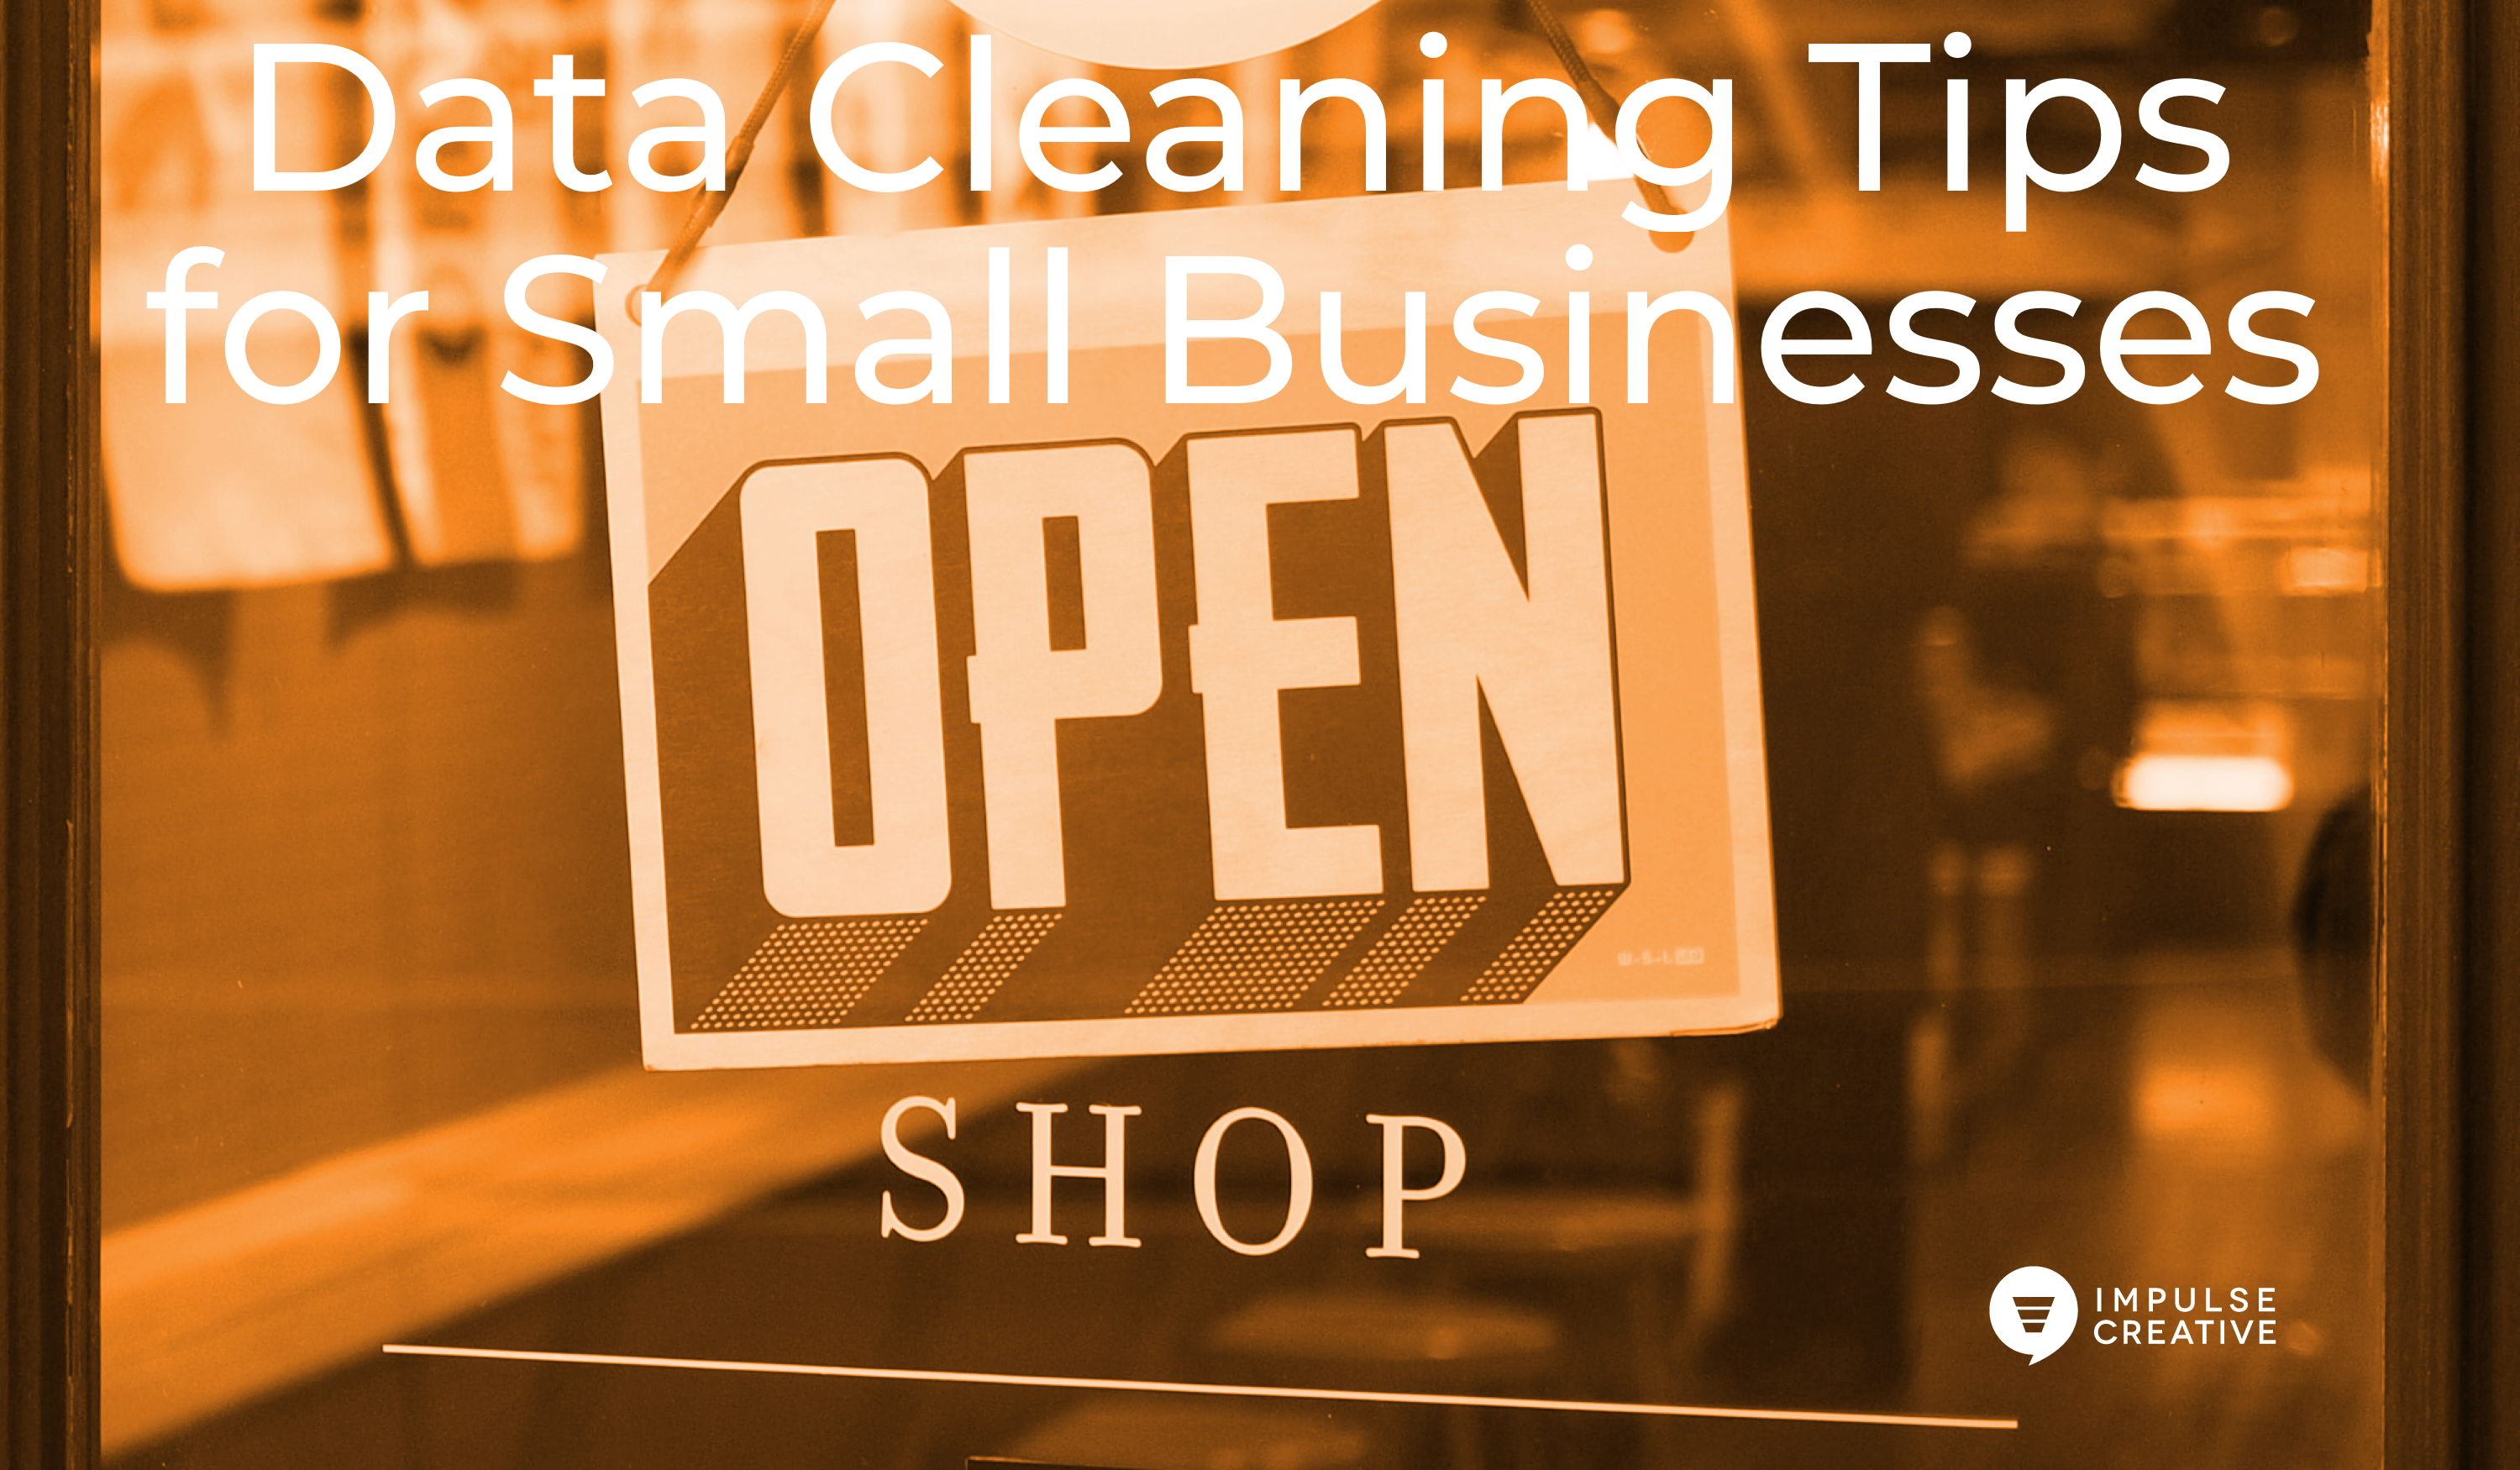 Data Cleaning Steps for Small Businesses